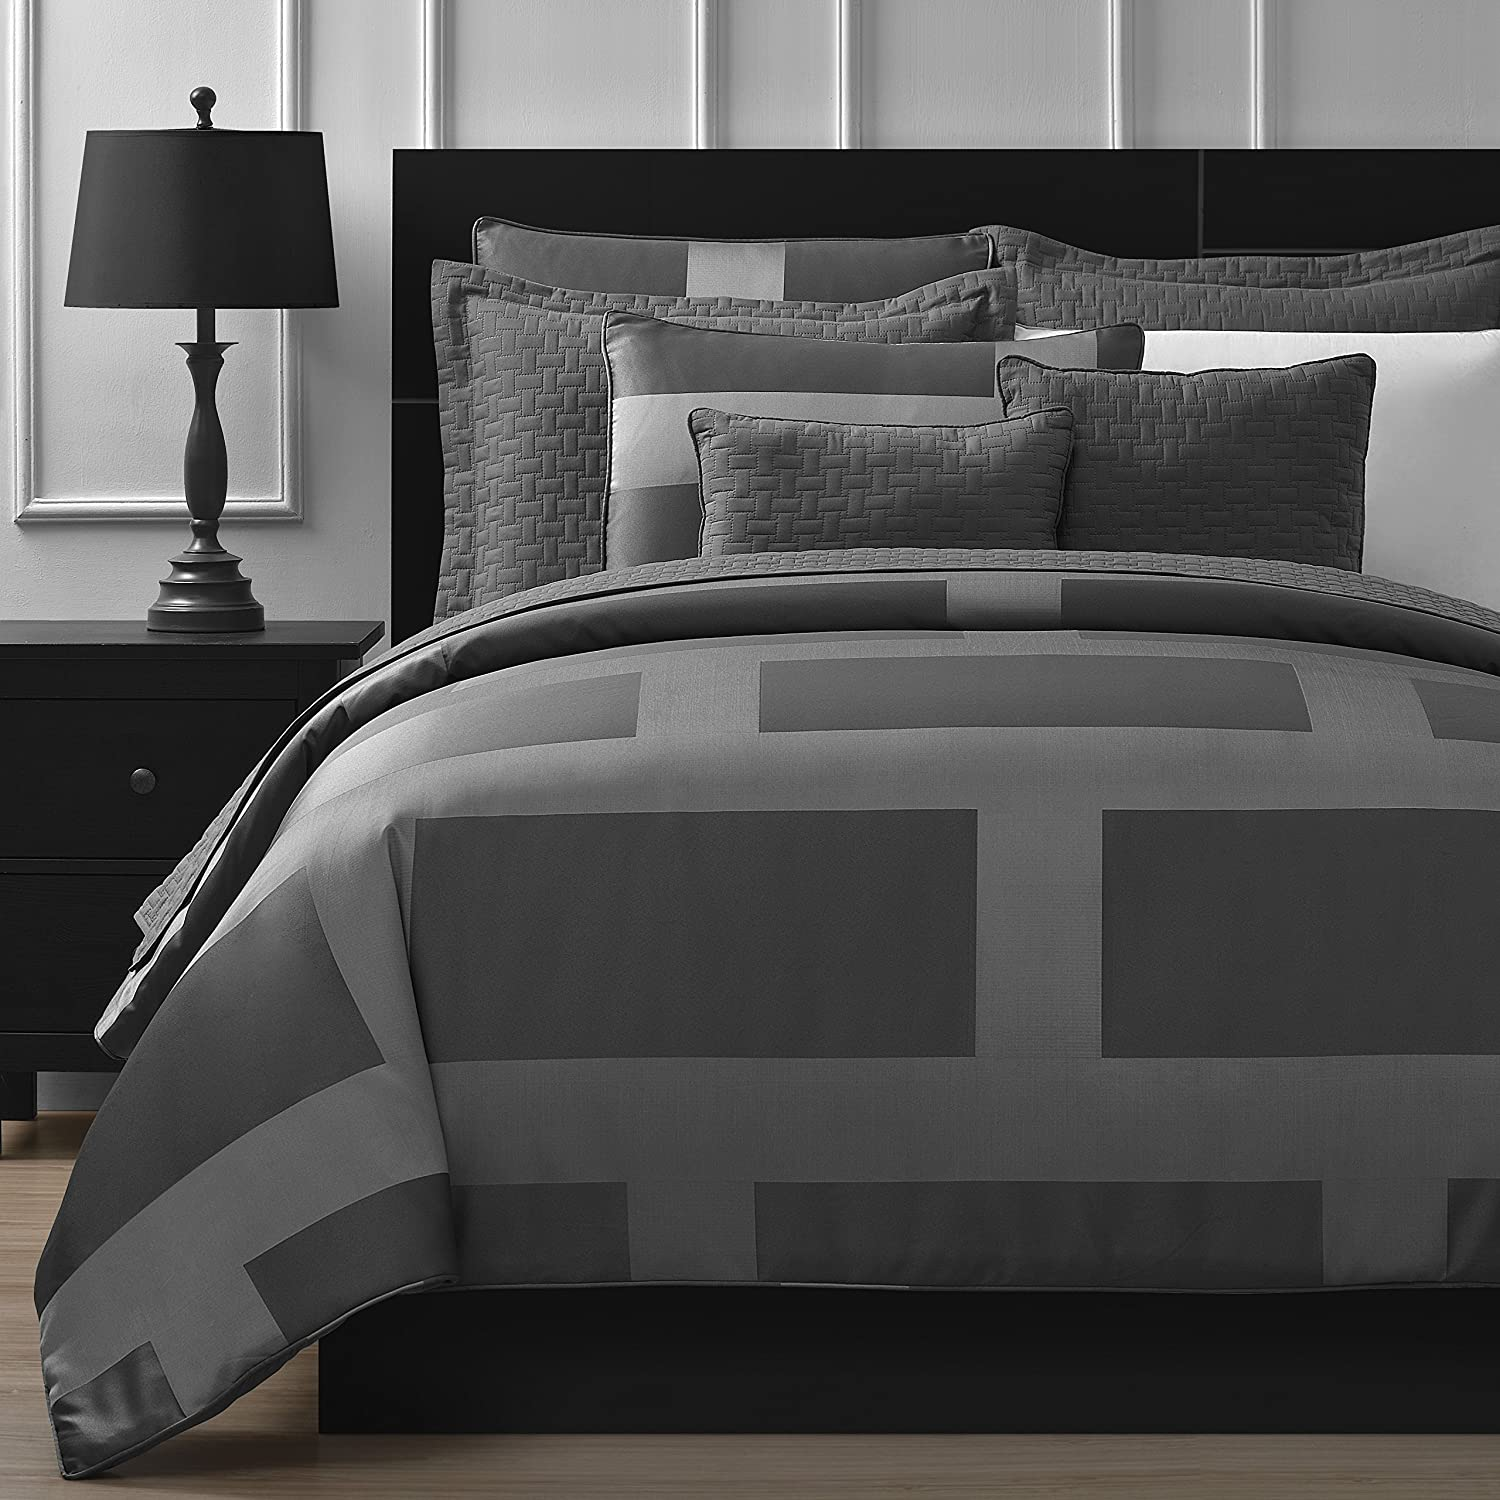 Jacquard Microfiber 5-Piece Comforter Set King, Gray